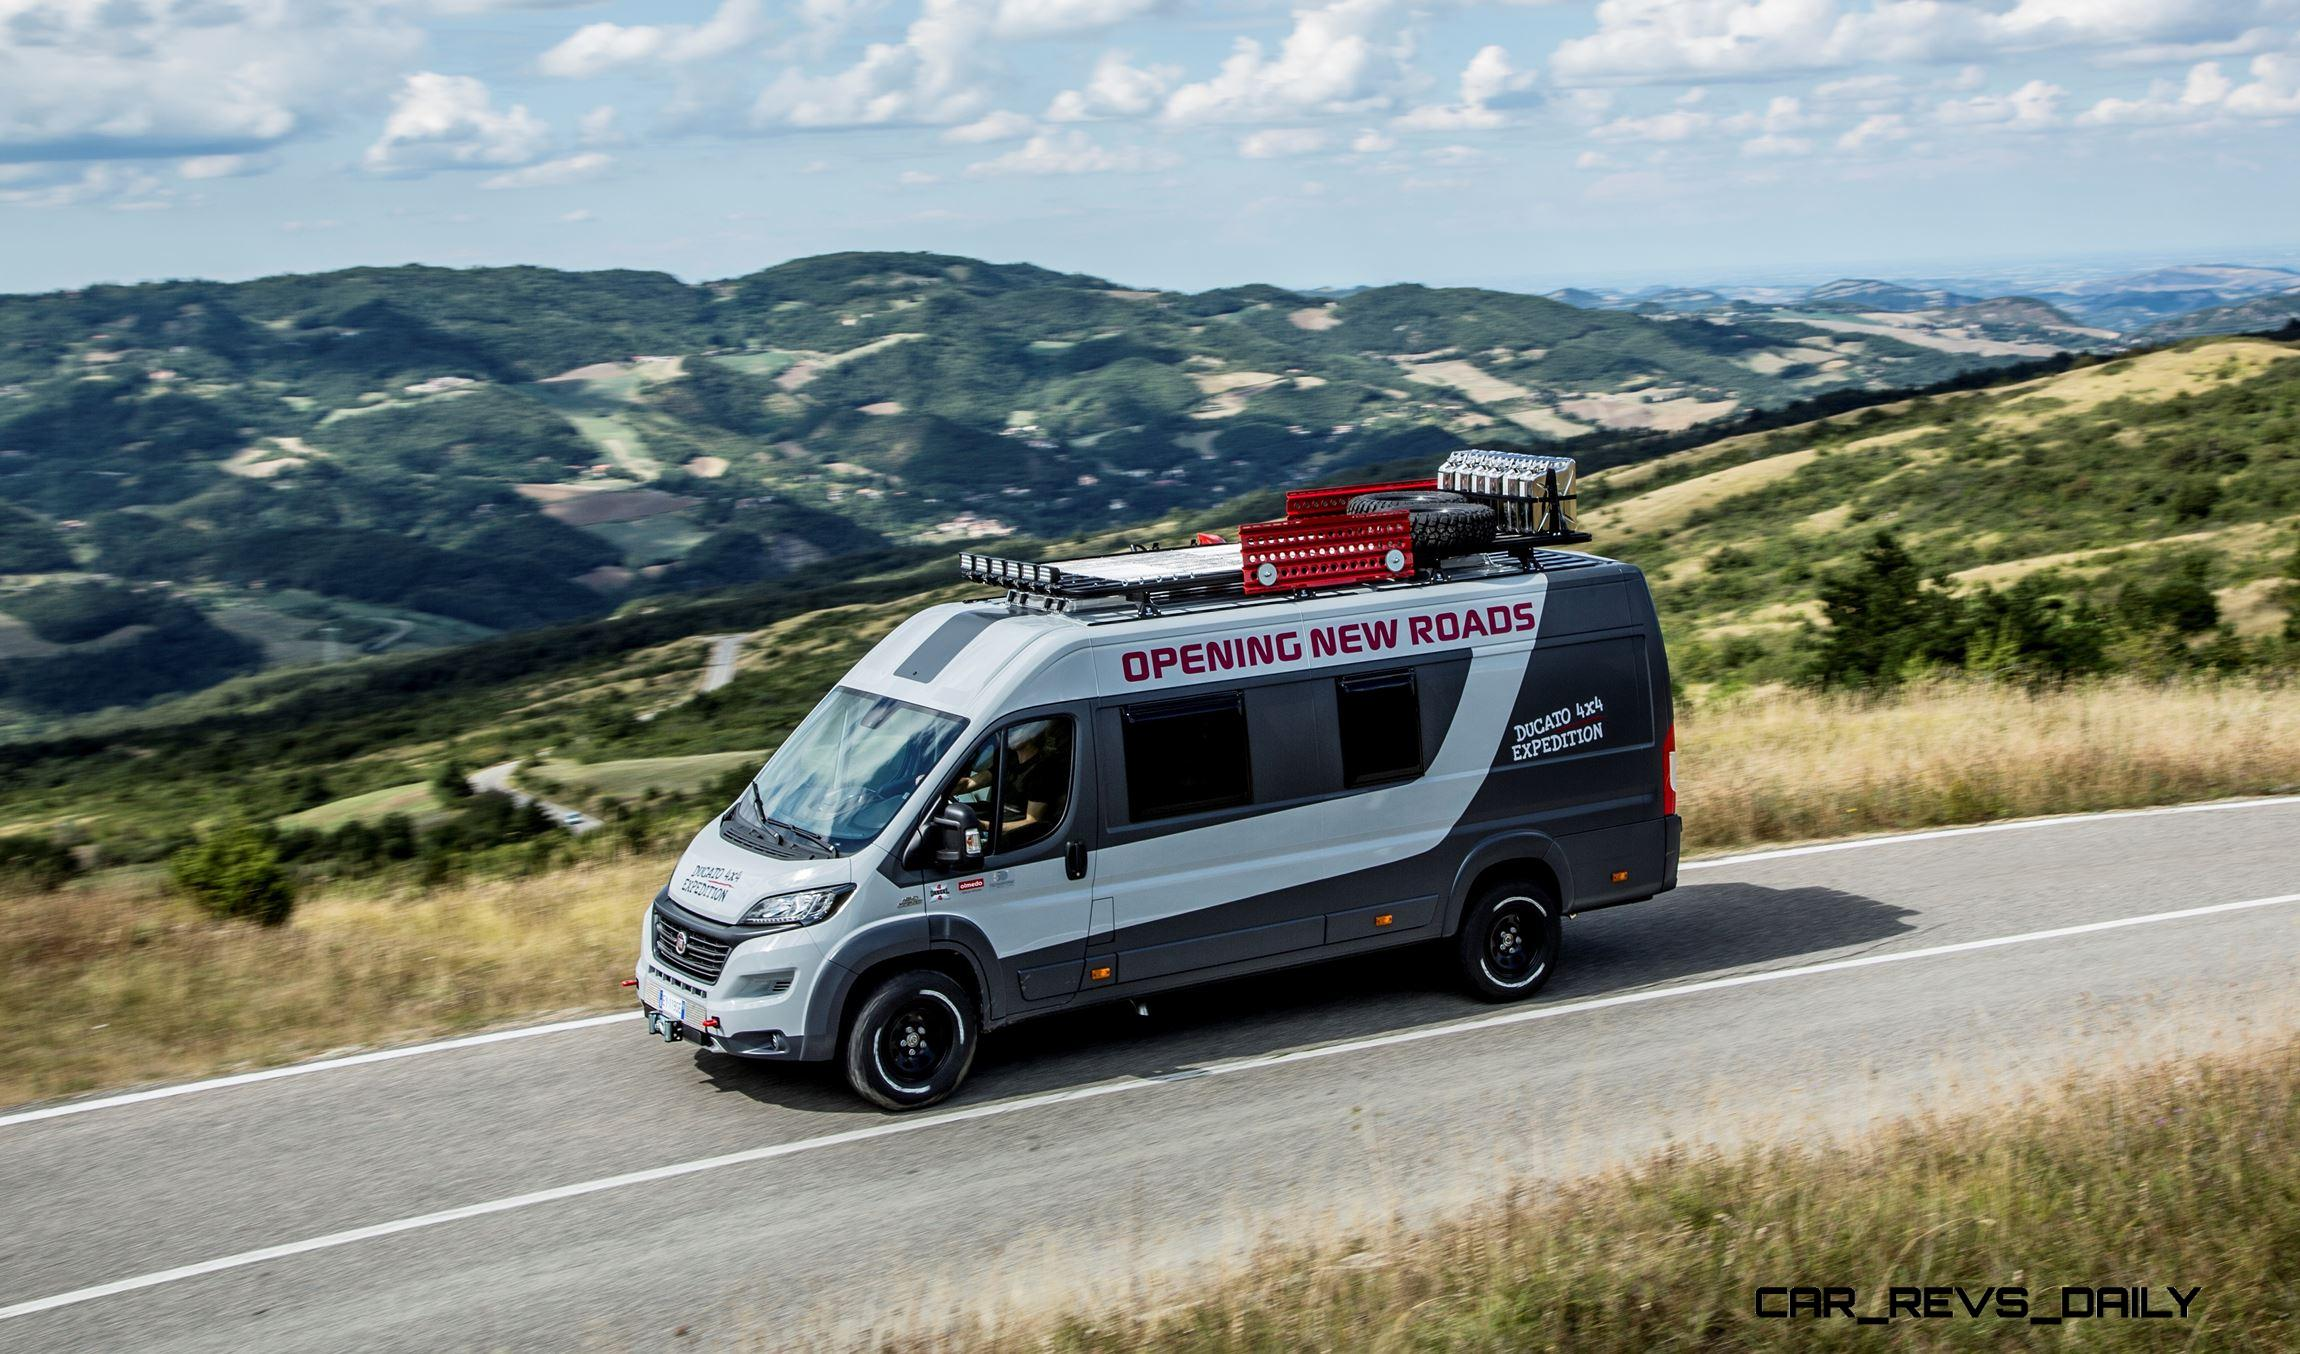 2015 Fiat Ducato 4x4 Expedition Concept Teases New ProMaster ...